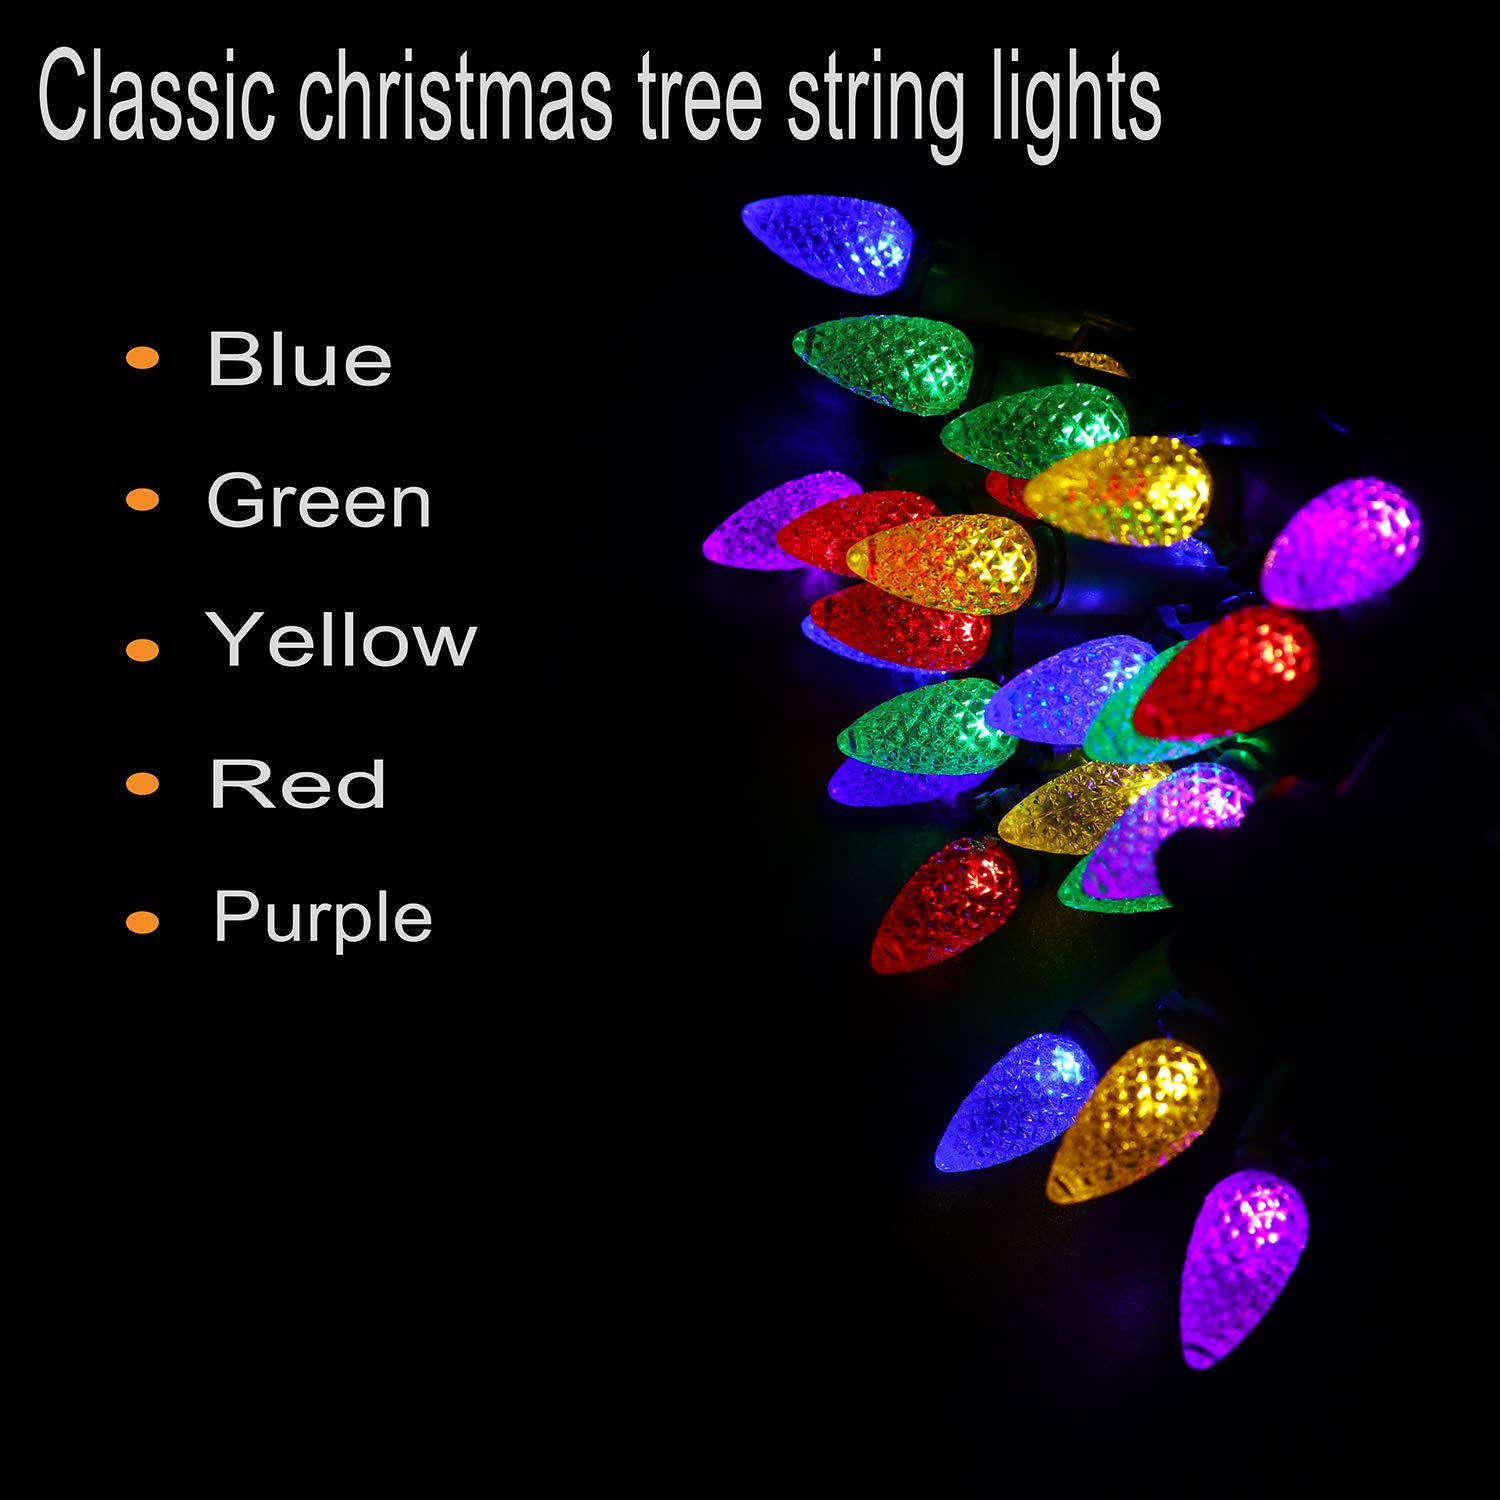 Vanrayal Upgrade C3 Christmas Tree Lights End To Led Light Circuit Diagram Together With Cat 5 Cable Wiring Plug 50 18ft Outdoor String Multicolor For Patio Garden Green Wire Ul List